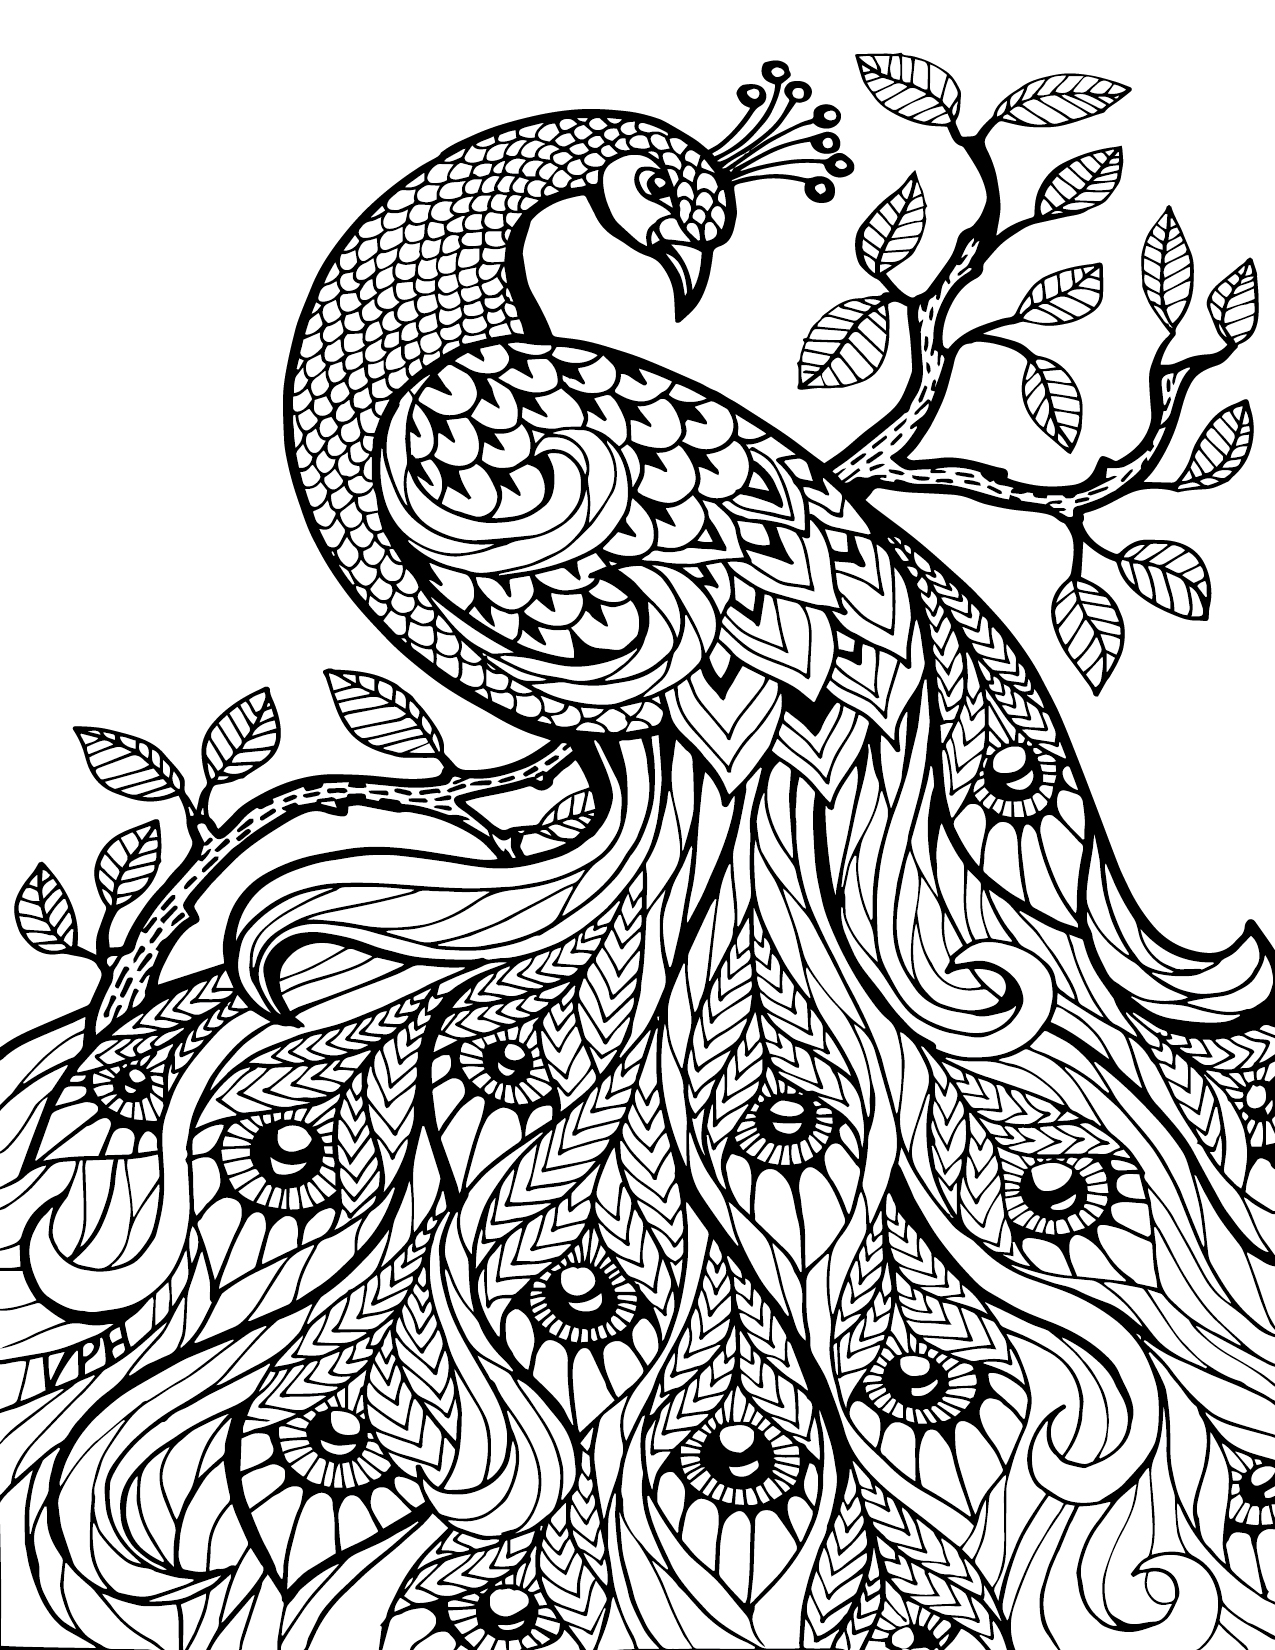 440x440 Adult Coloring Book Pages Free Printable For Kids 1 1275x1650